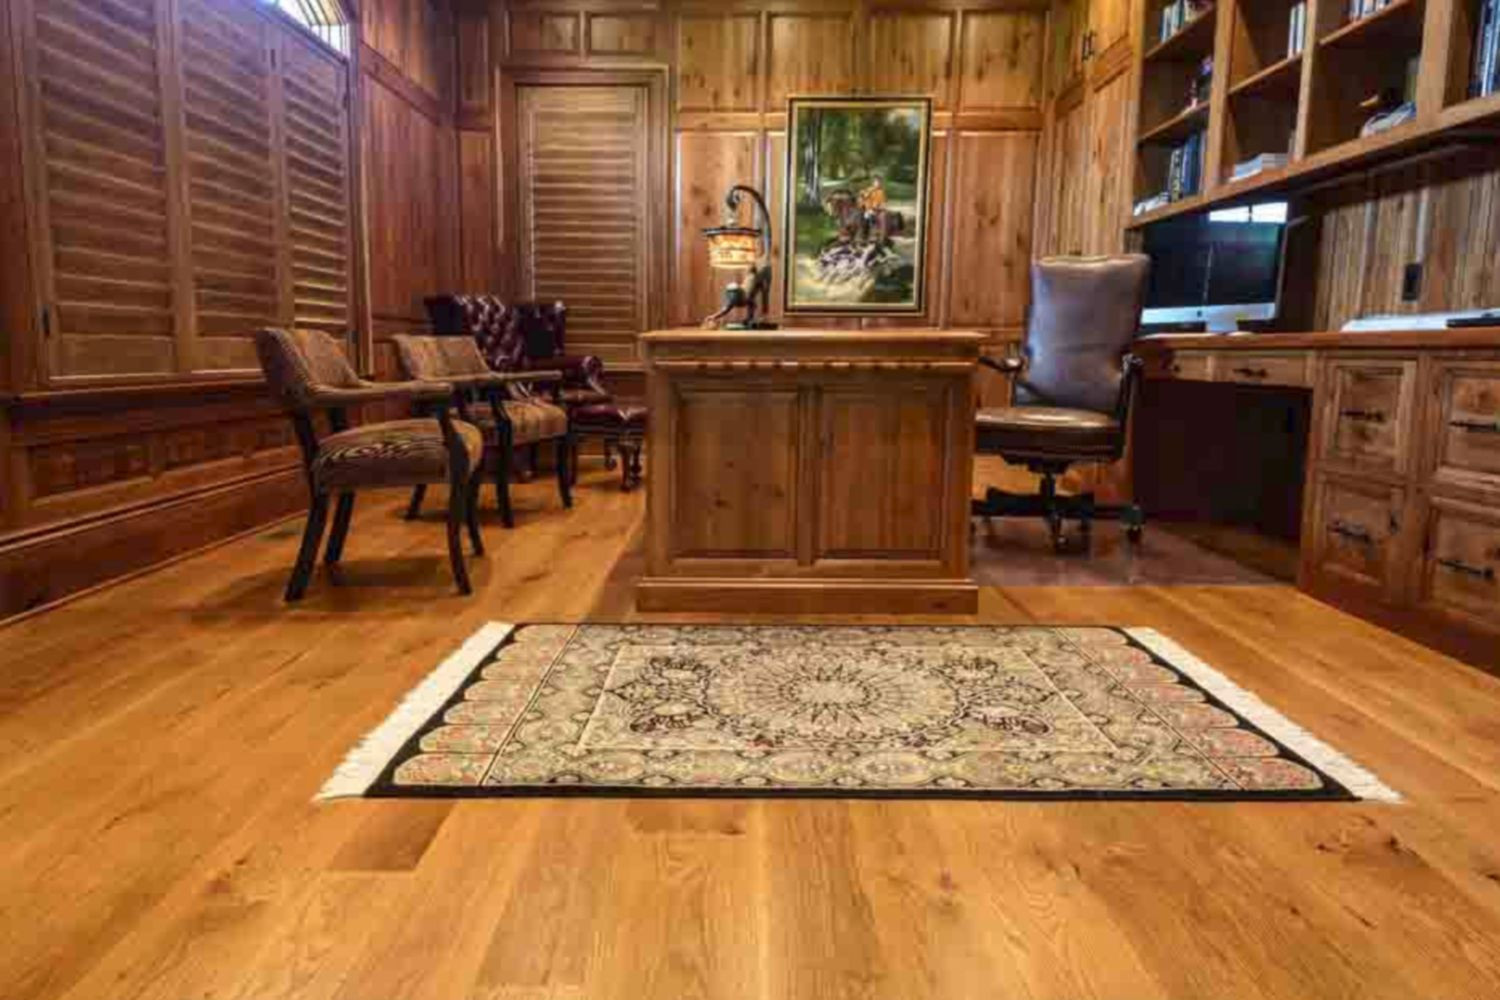 10 Elegant Bruce Oak Hardwood Flooring Reviews 2021 free download bruce oak hardwood flooring reviews of top 5 brands for solid hardwood flooring with regard to the woods company white oak 1500 x 1000 56a49f6d5f9b58b7d0d7e1db